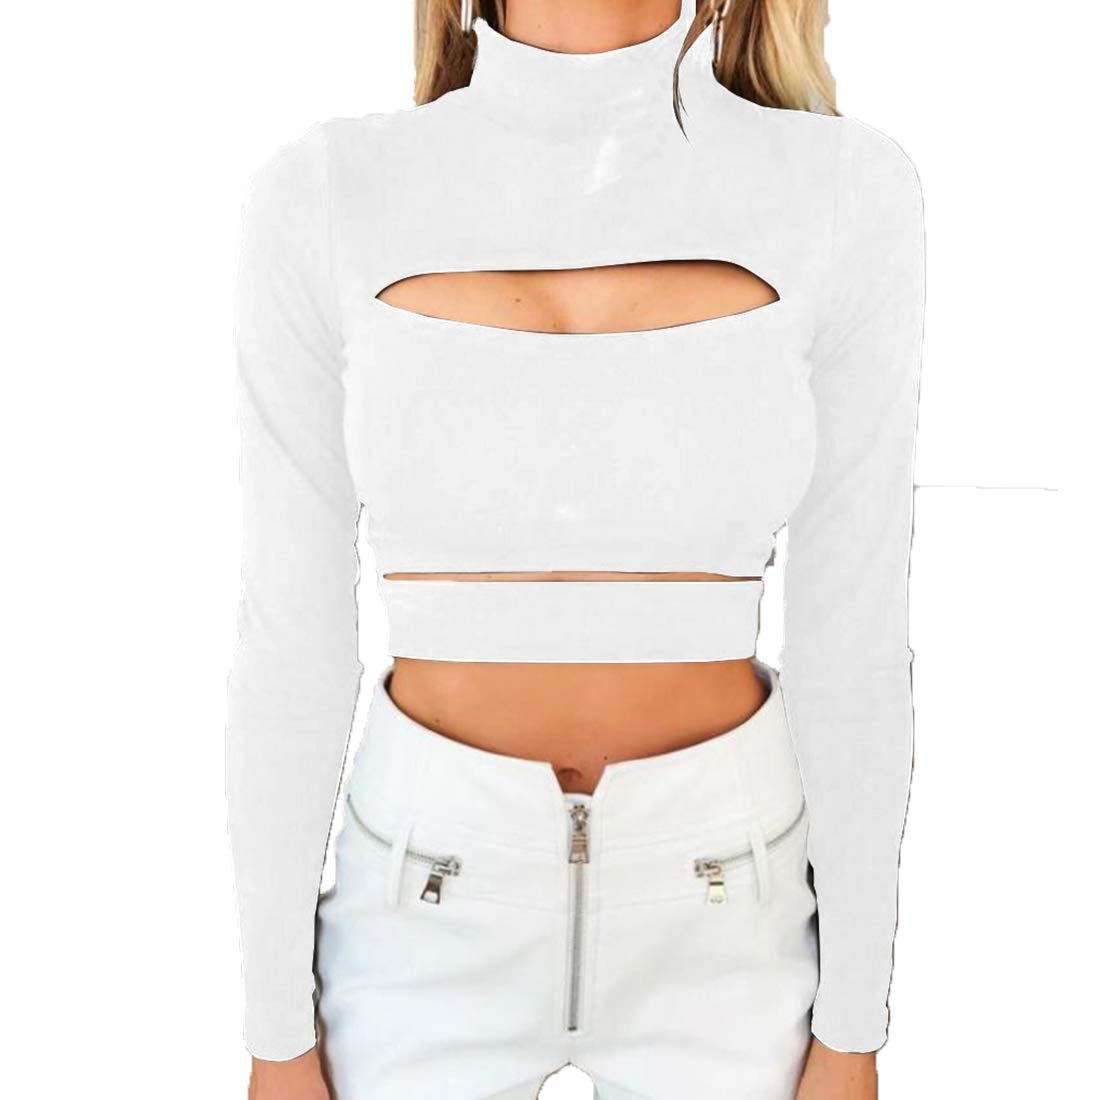 32553602464 Amazon.com: MOLFROA Women's Sexy Long Sleeve High Neck Chest Hollow Out  Teens Short T-Shirt Crop Tops: Clothing